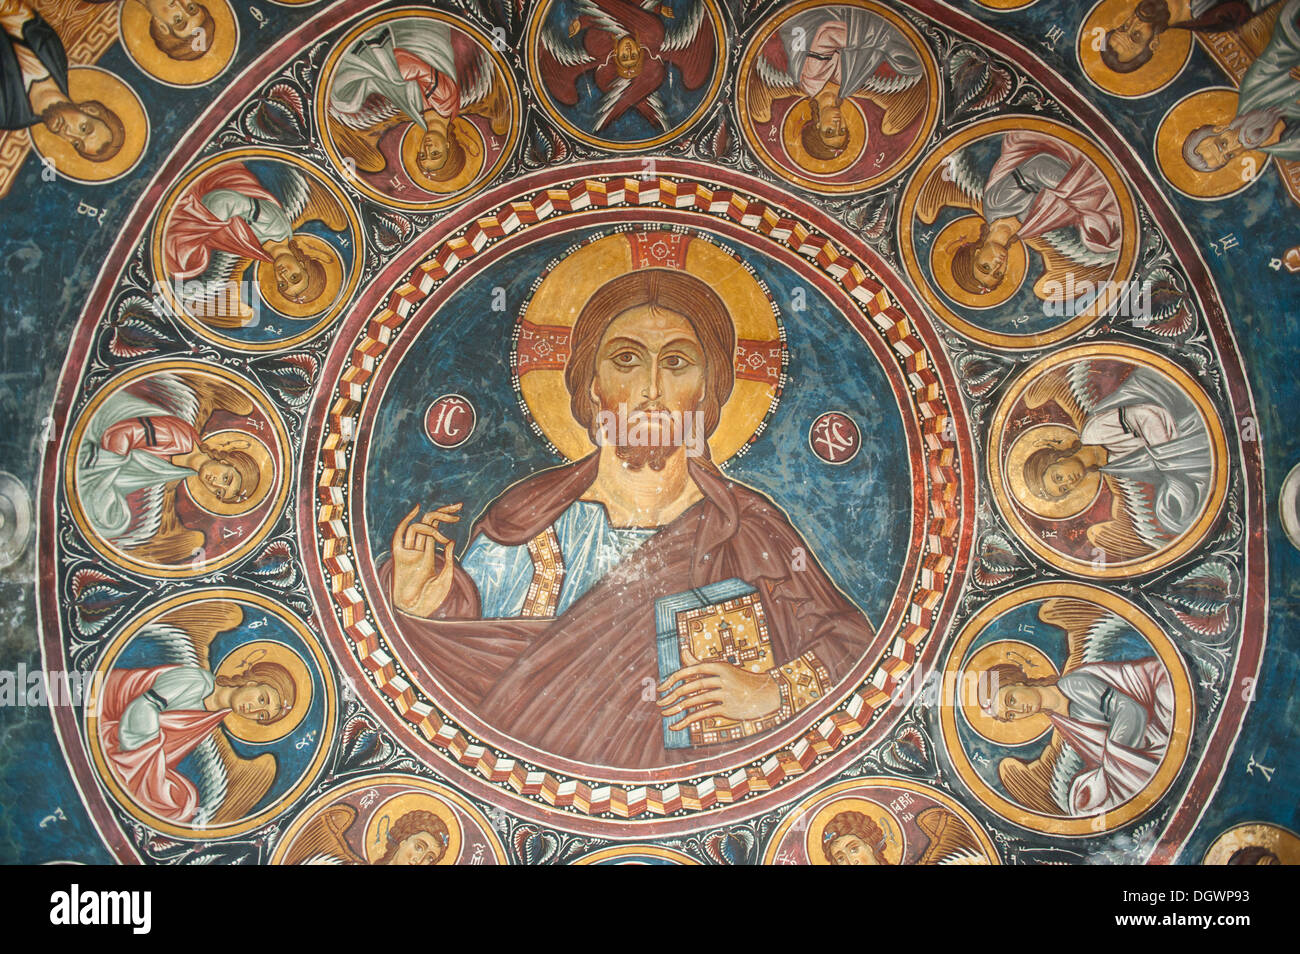 Jesus Christ Pantocrator, finely crafted fresco in the dome of the Greek Orthodox Church of Cyprus, Panagia tis Asinou, Nikitari - Stock Image